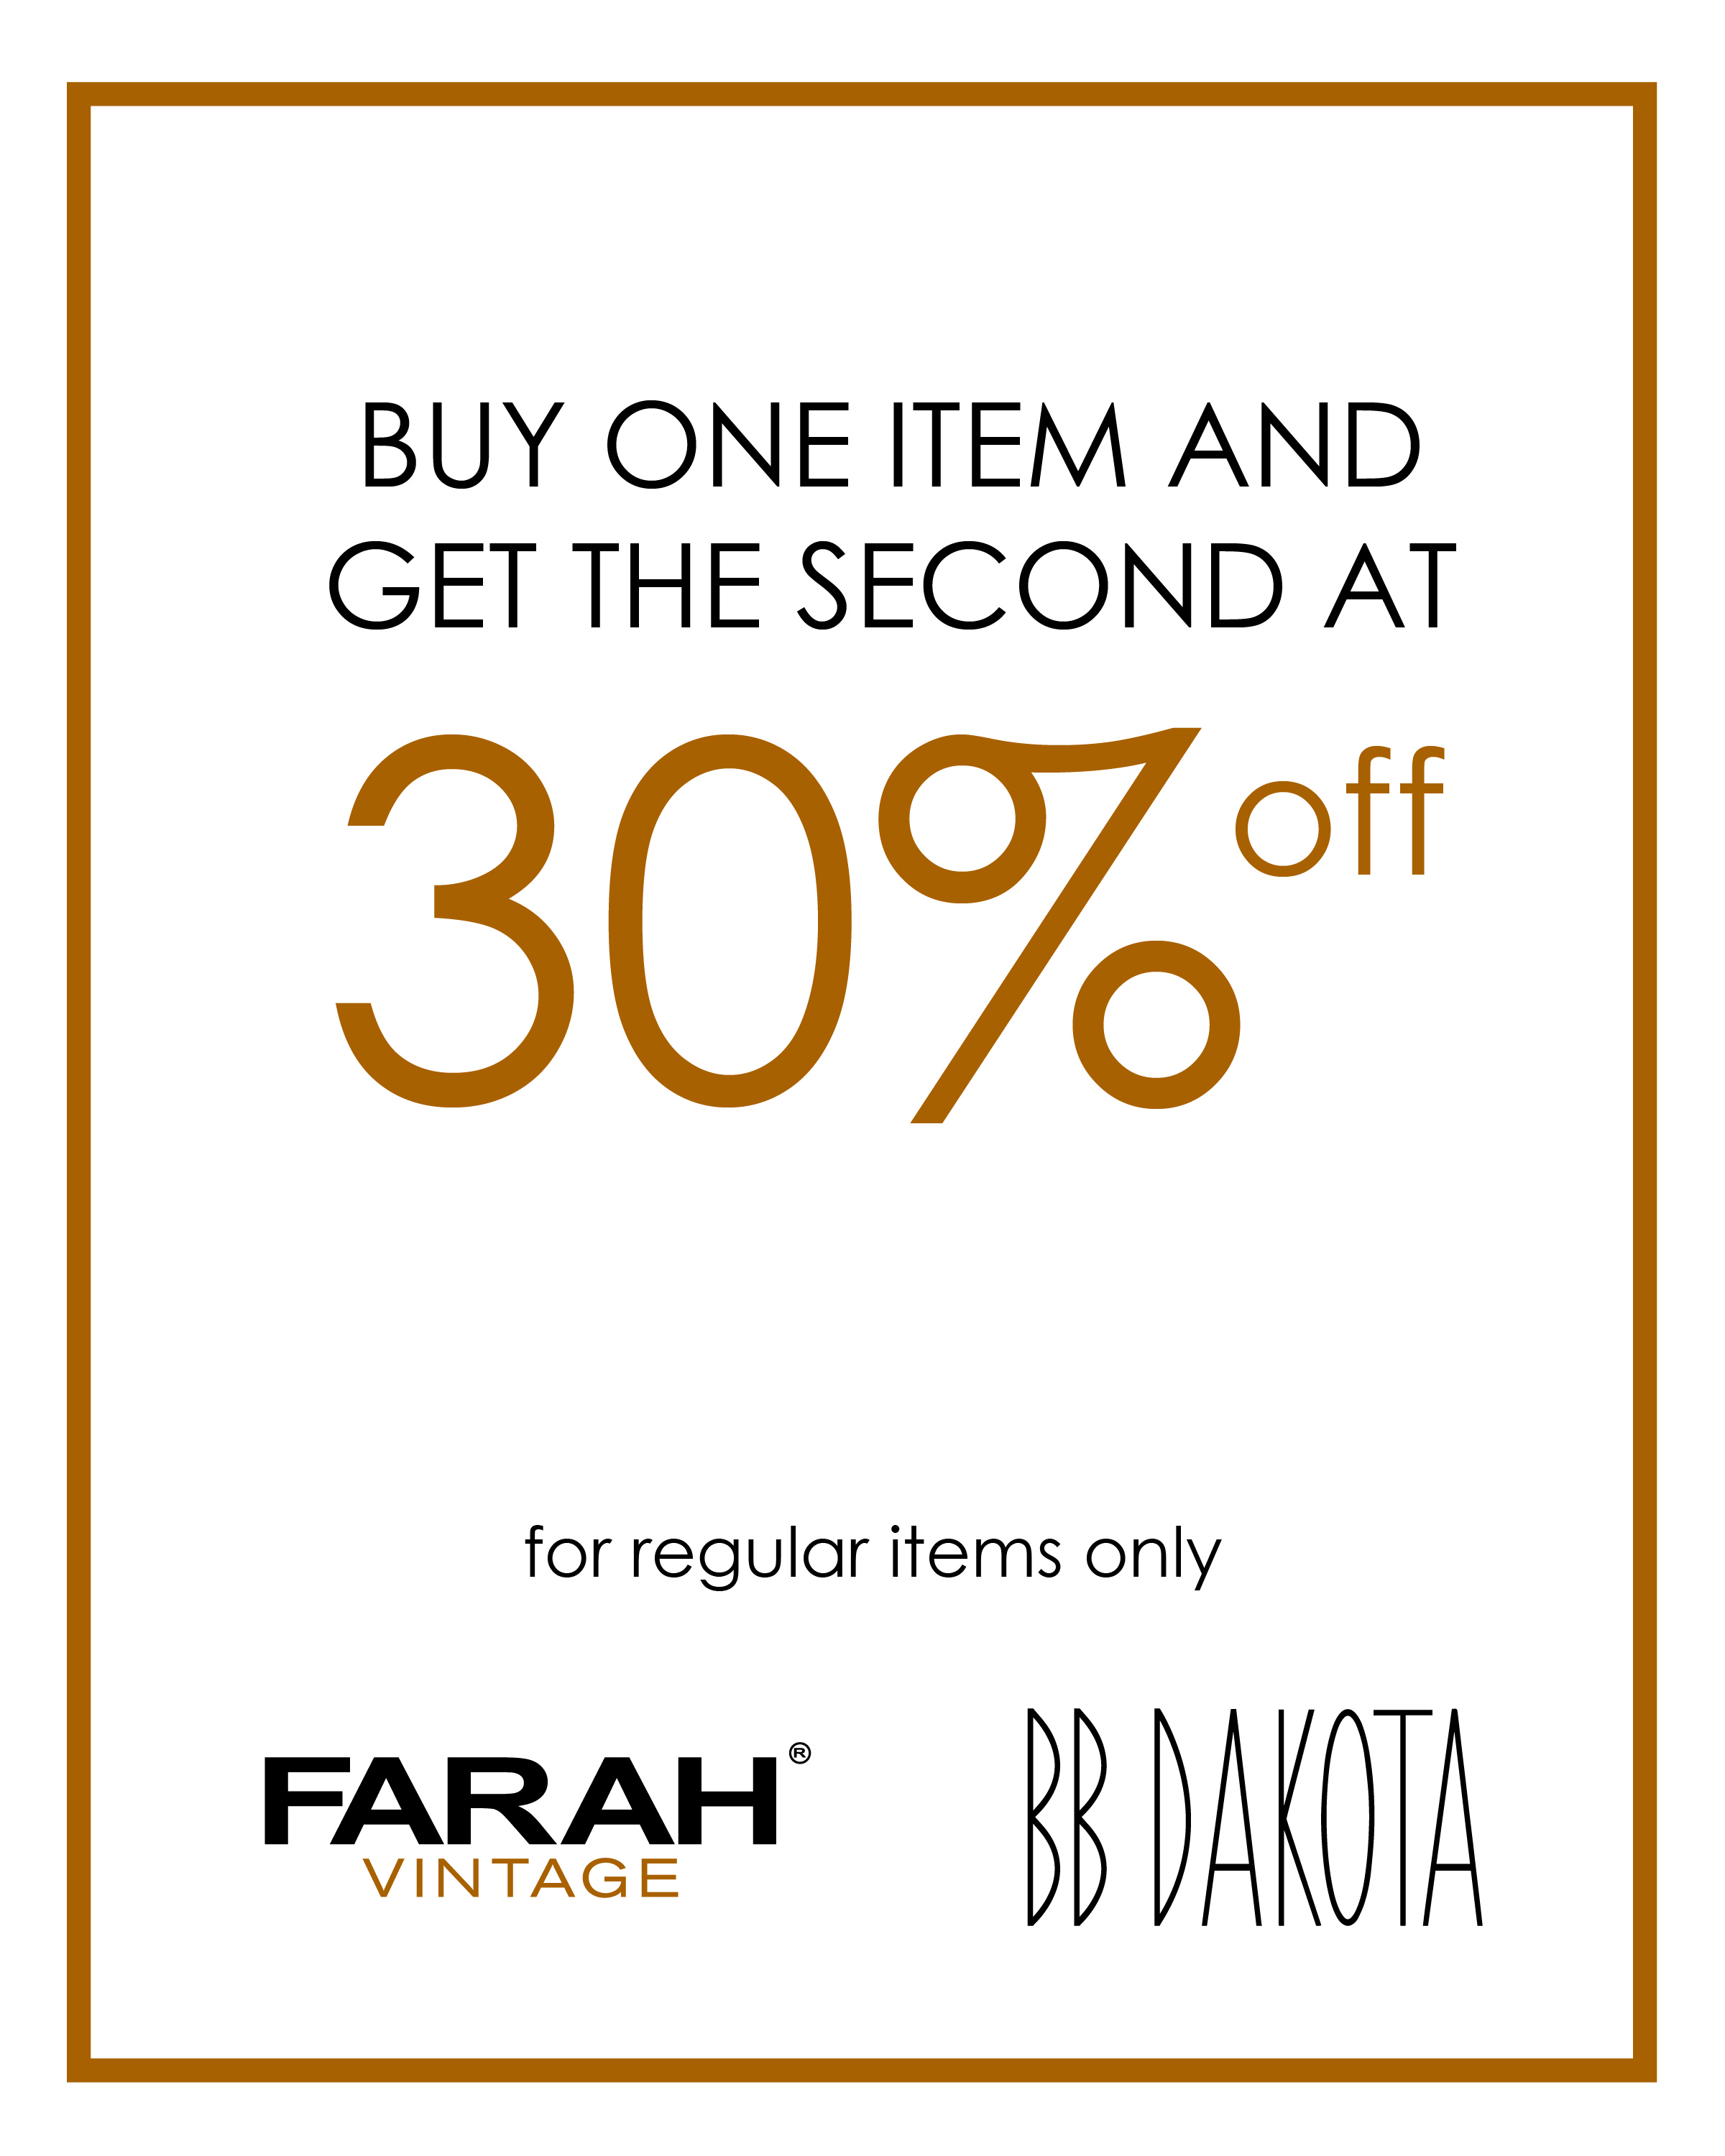 BB Dakota & Farah Vintage Discount Promo January - February 2014